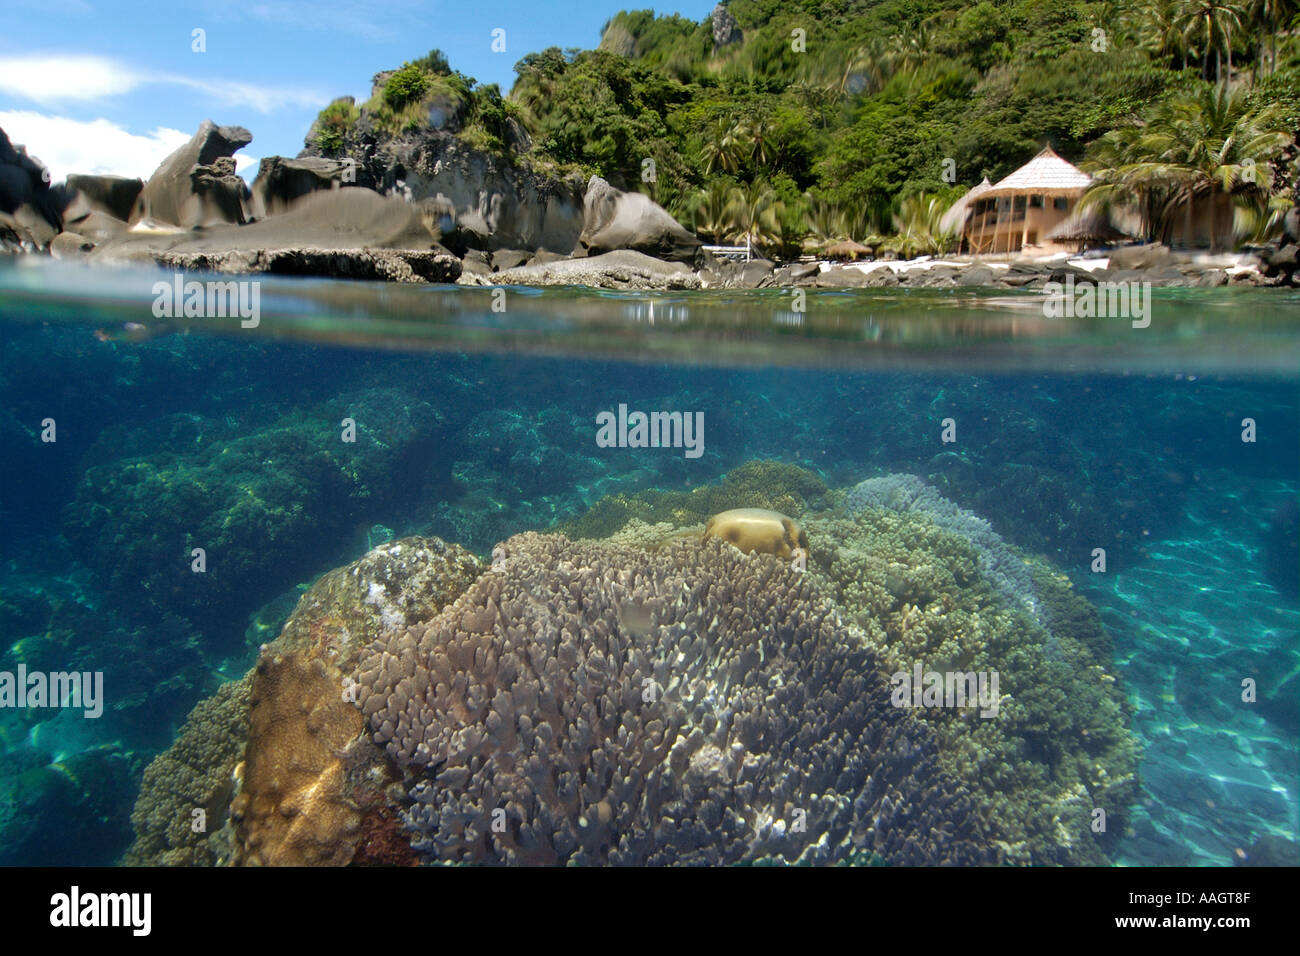 Over Under Image Of Coral Reef And Beach Bungalow Surrounded By Trees Rocks Apo Island Marine Reserve Philippines